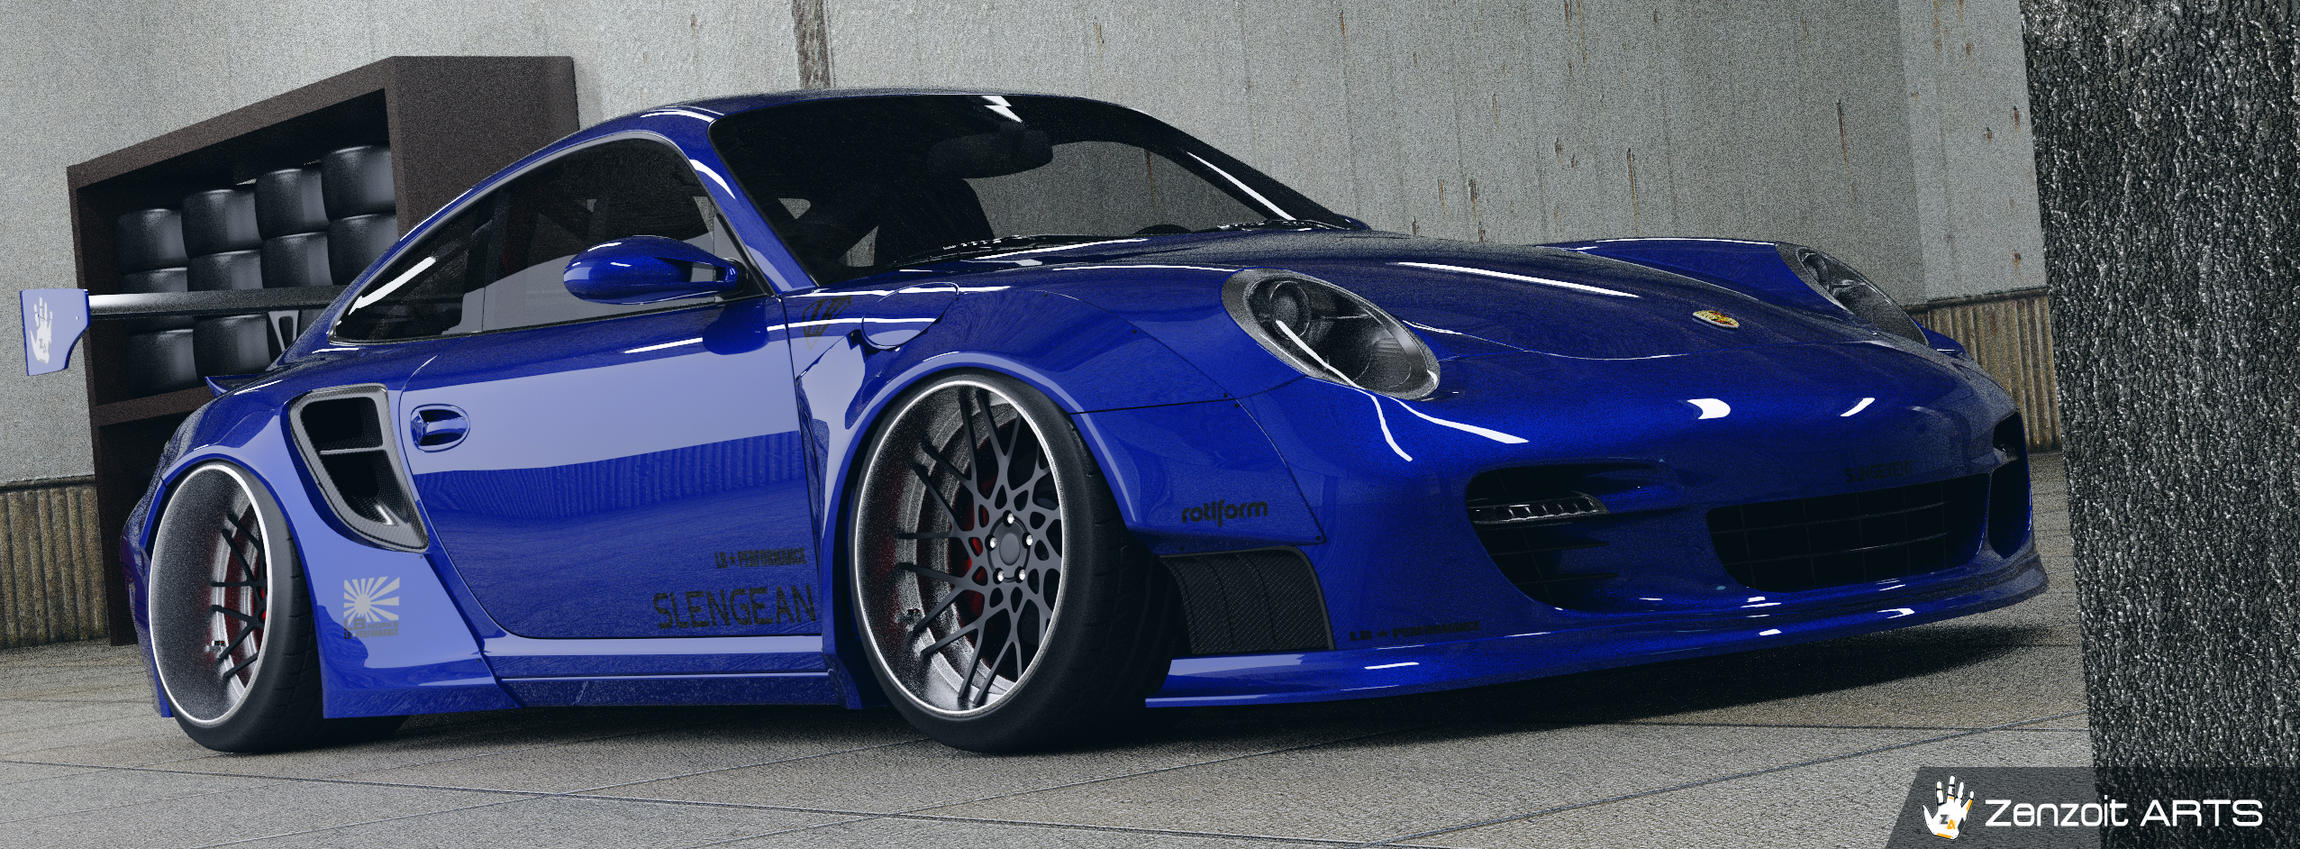 2007 Porche 911 Turbo Liberty Walk Kit - Finished Projects - Blender